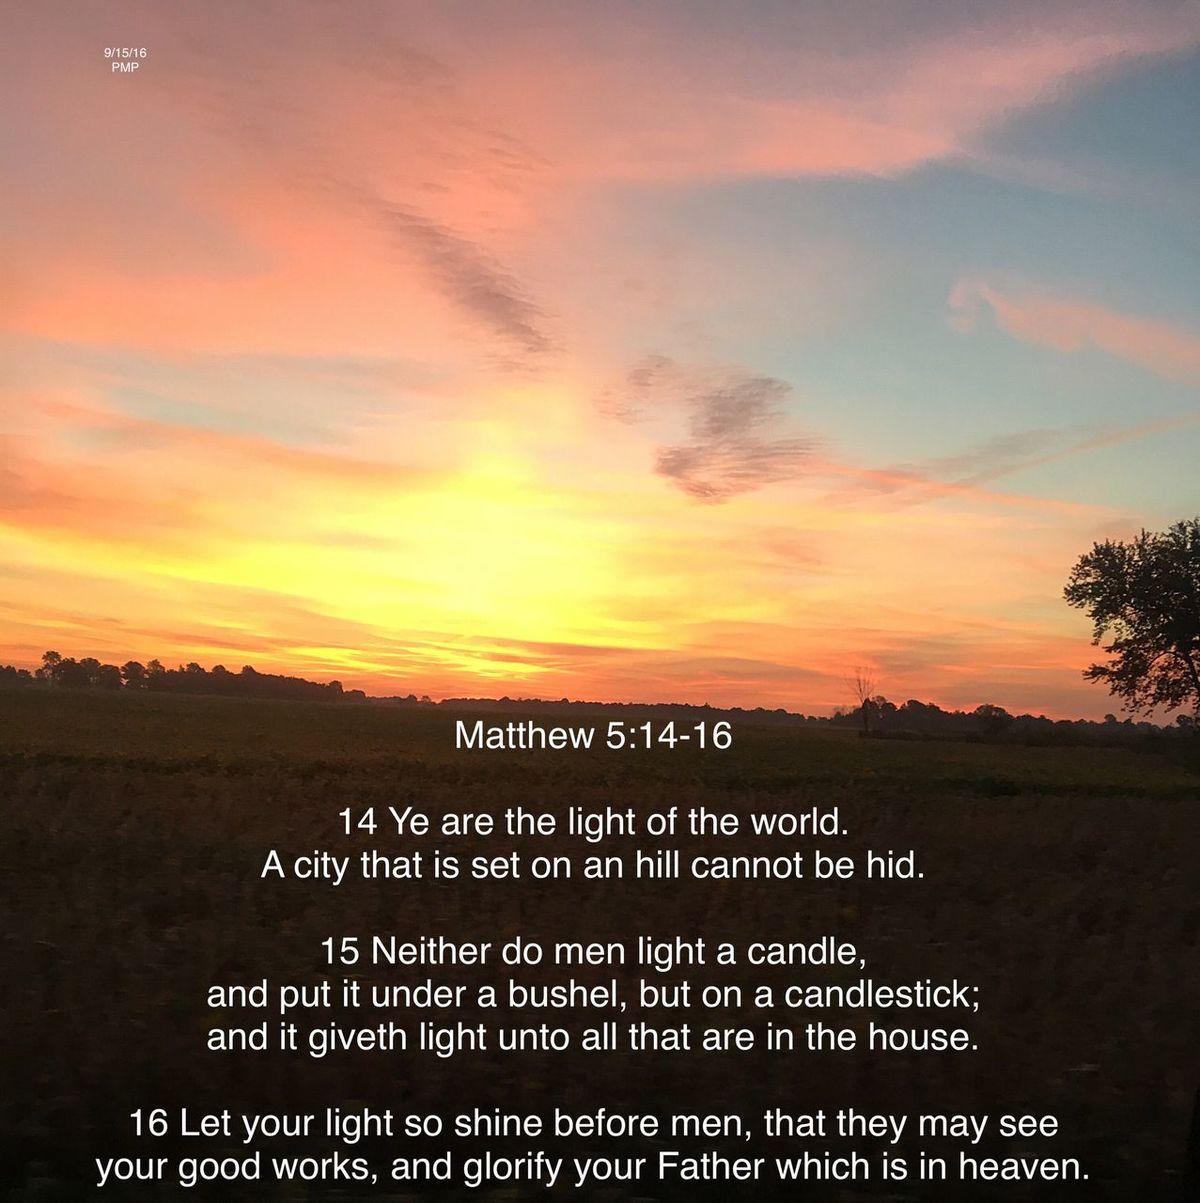 Shine your light! Message Cloud - Sky Beauty In Nature Sunrise Love Jesus Follow Christ Bible Verses Be A Light Love One Another